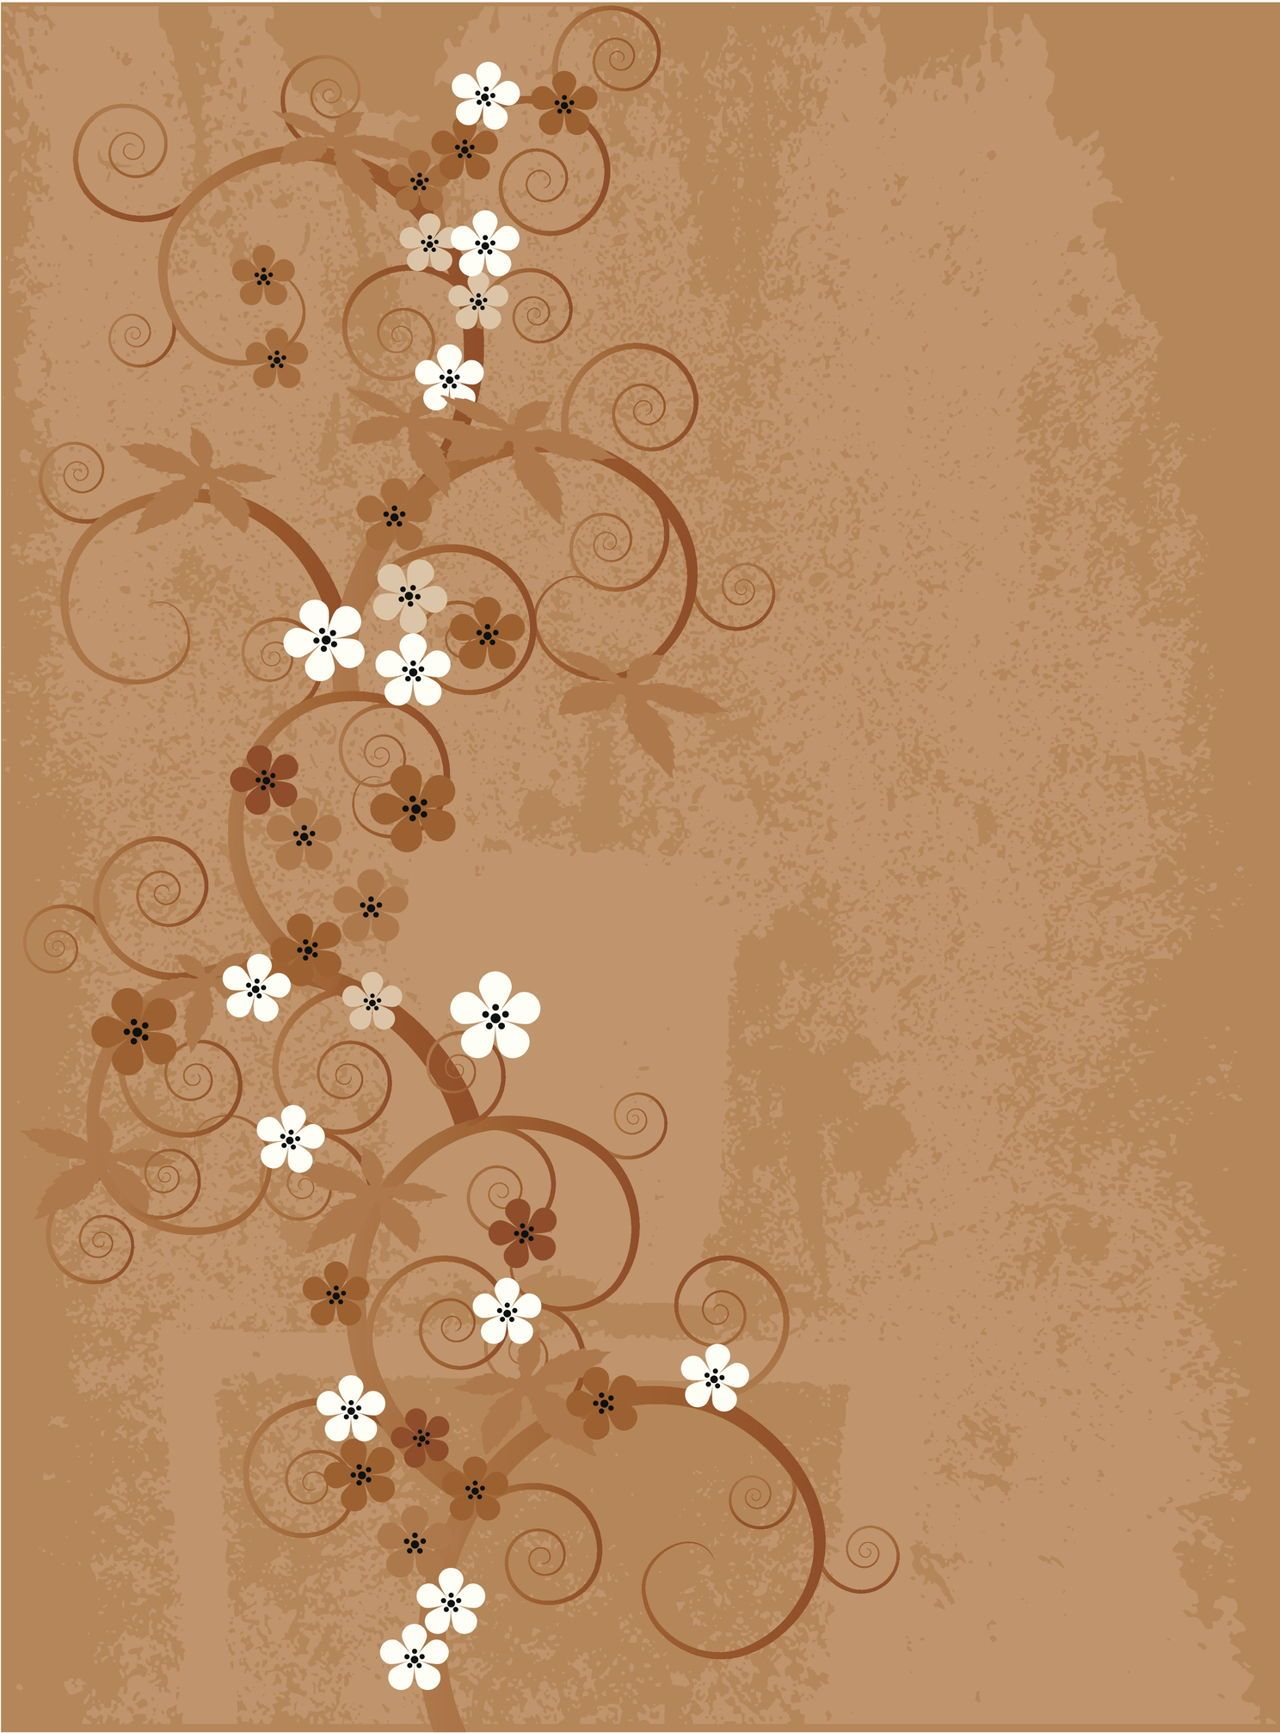 Fabulously stunning flower wall stencil ideas for painting